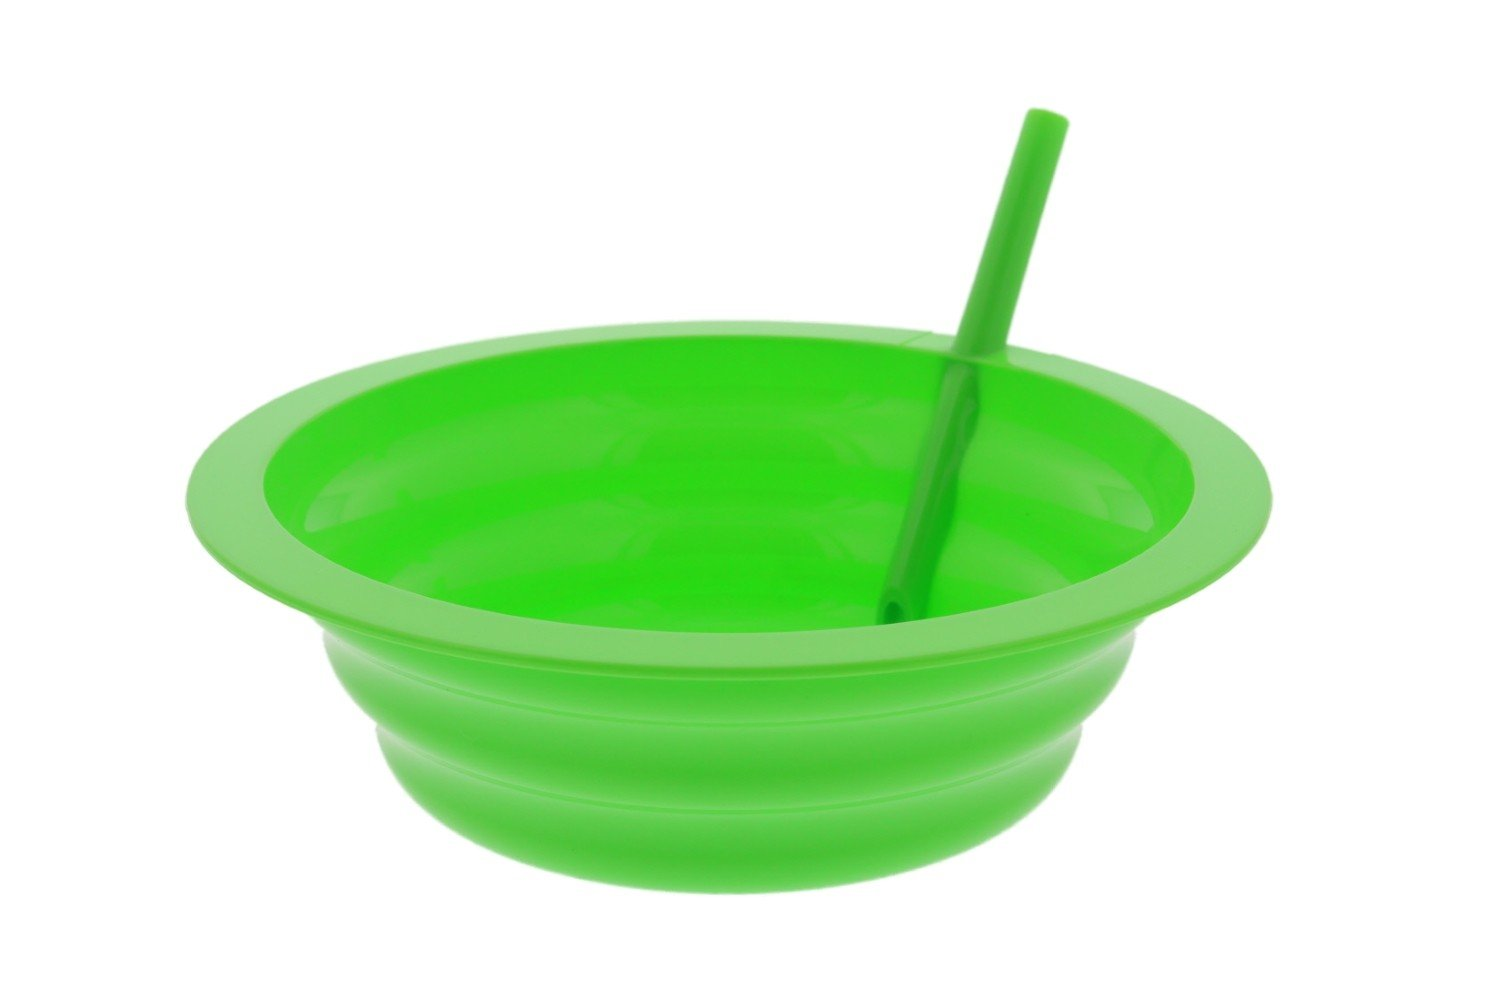 Arrow Sip-A-Bowl With Built In Straw, 22 oz, Blue, Purple,Green, Orange (4 Pack) by Arrow Home Products (Image #6)